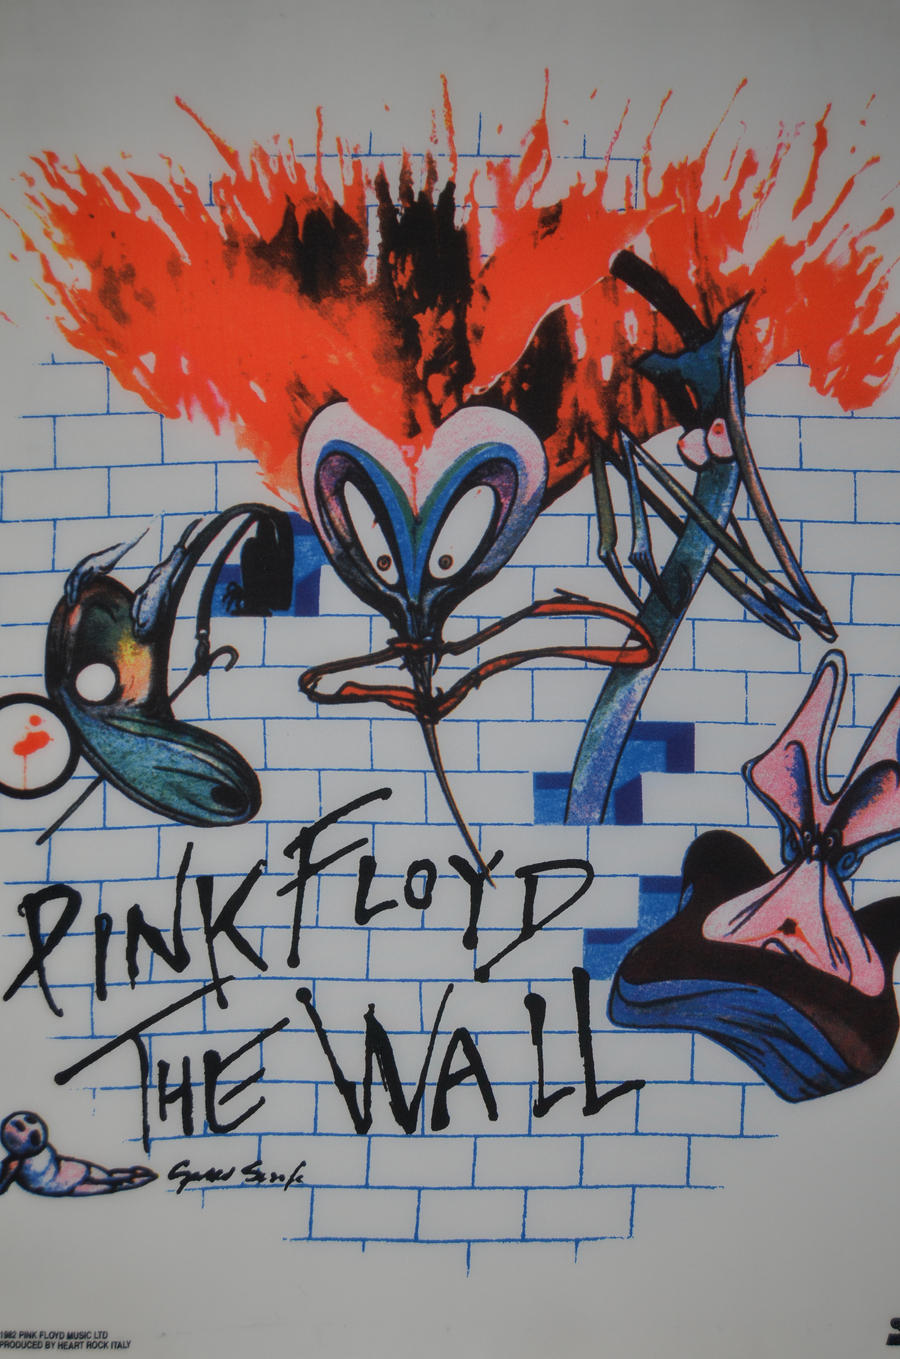 ... Pink floyd the wall by Dinkok & Pink floyd the wall by Dinkok on DeviantArt